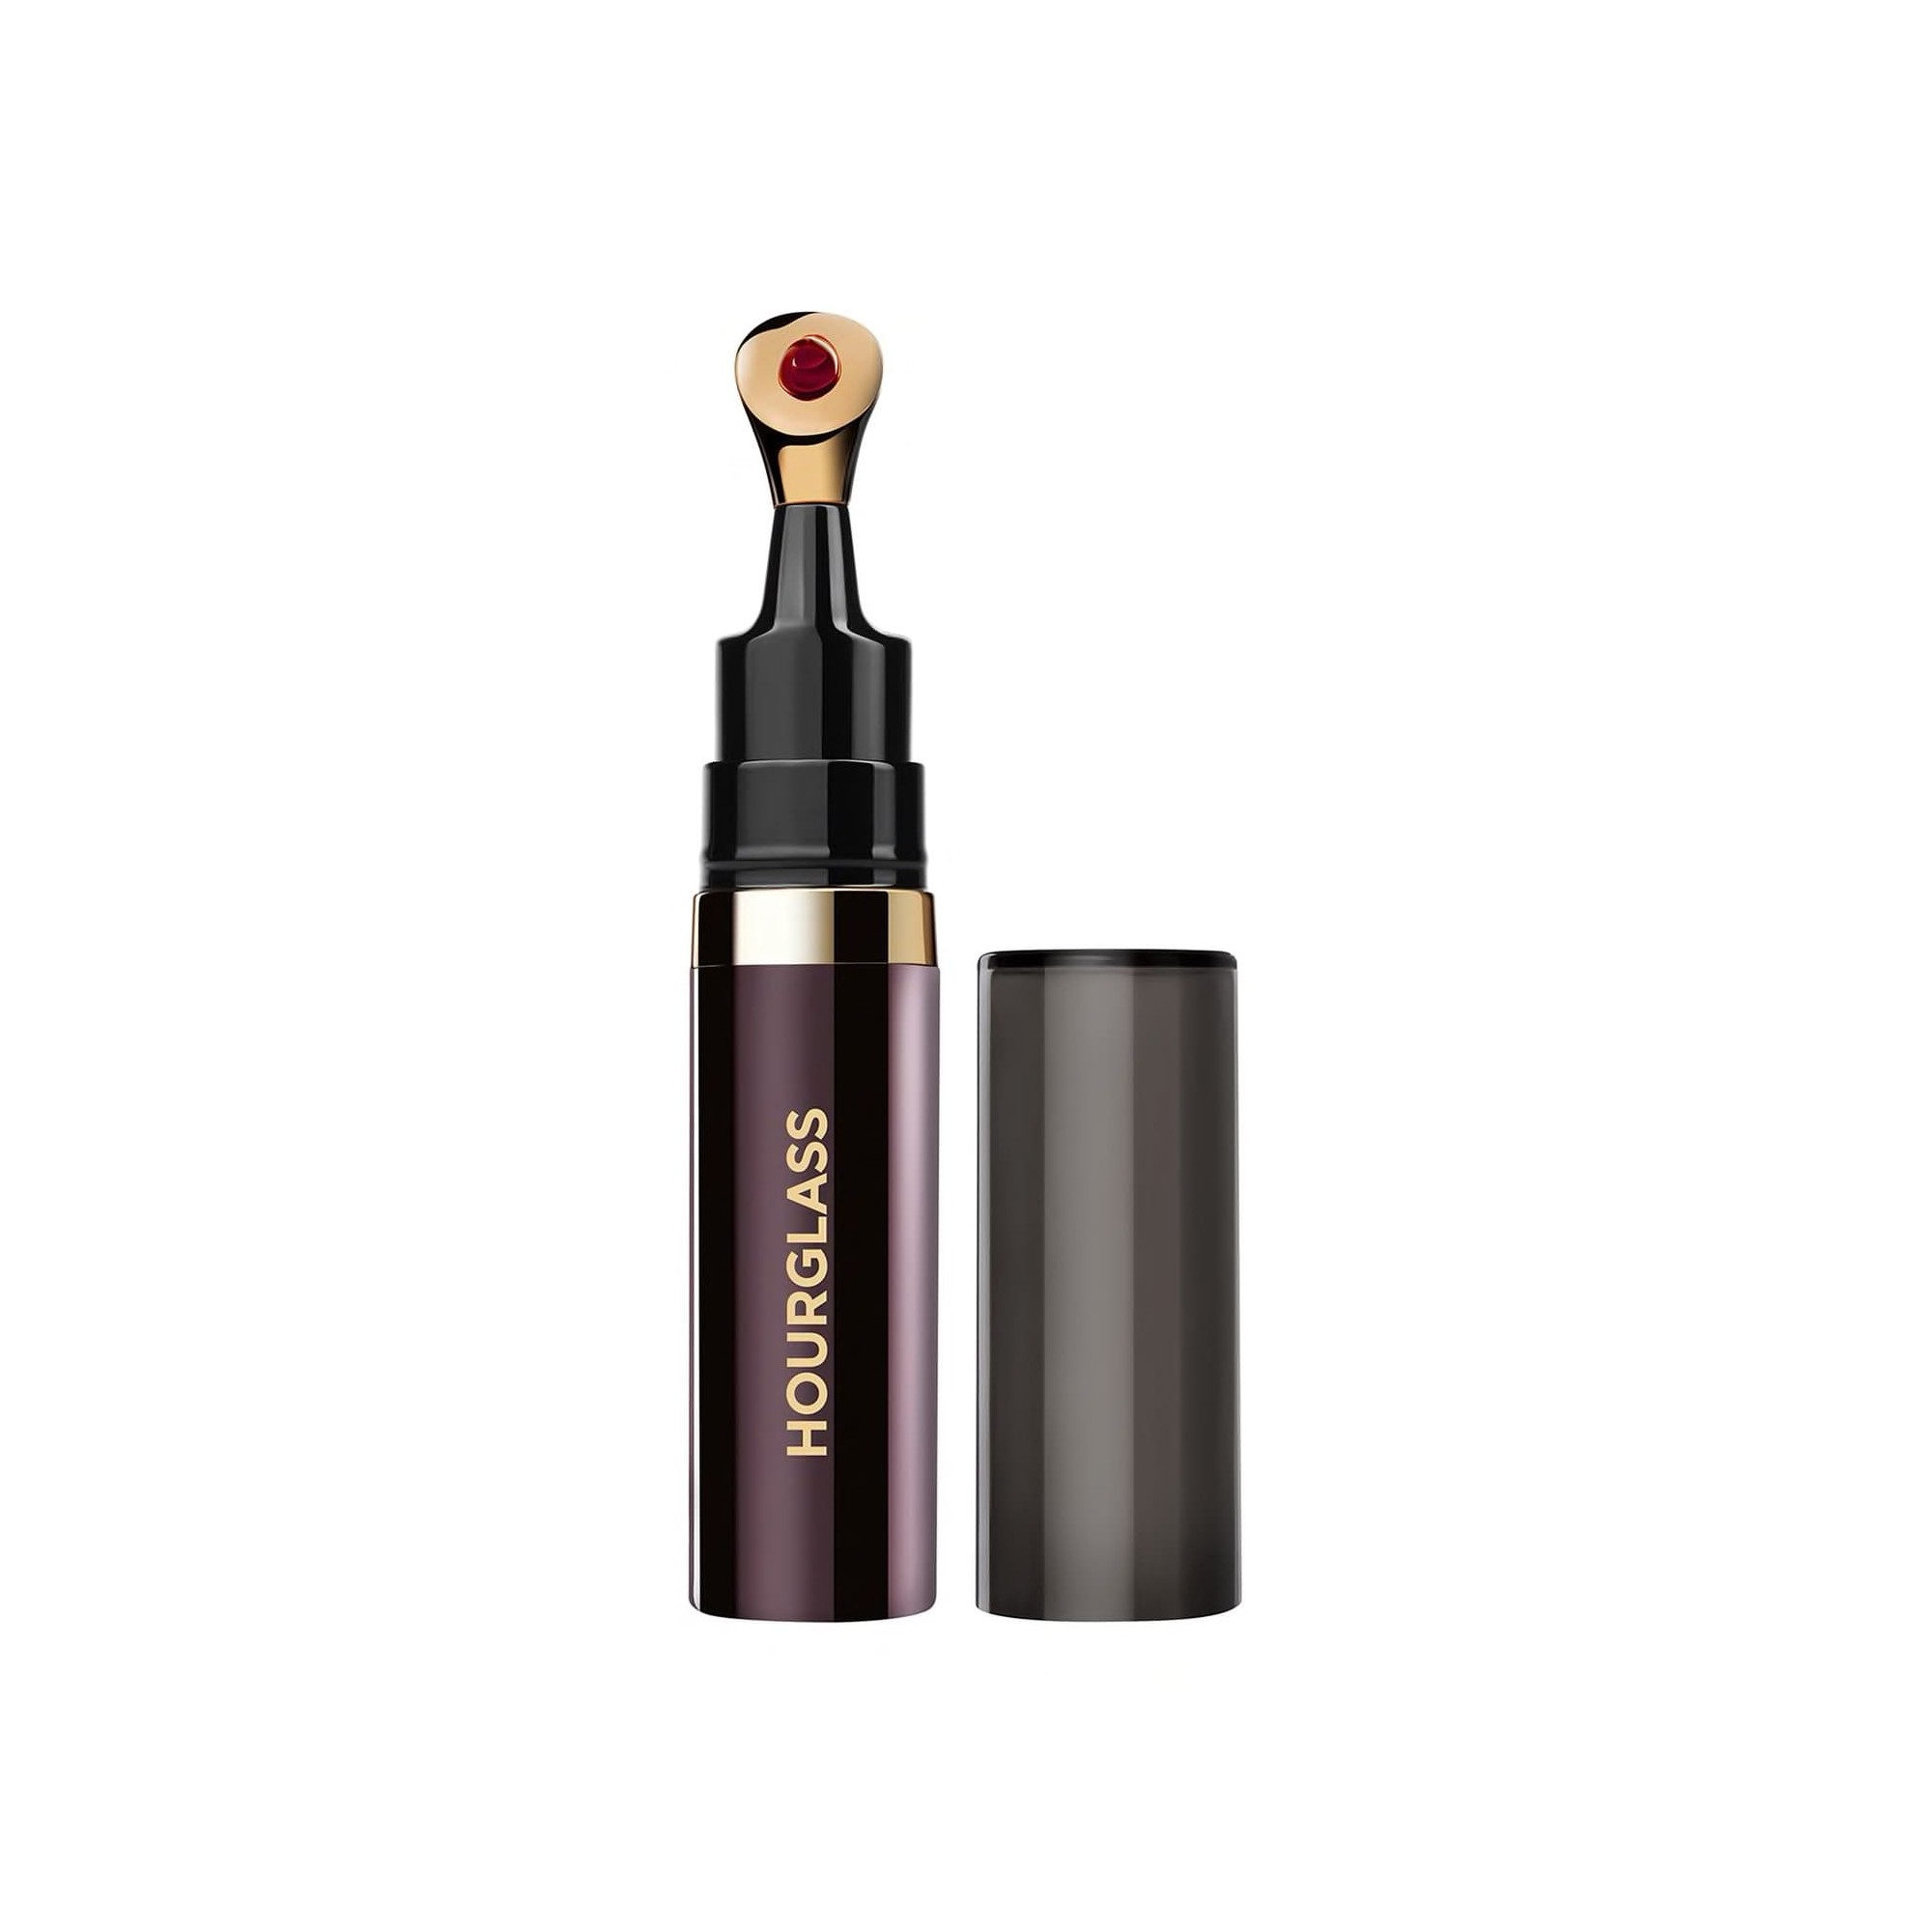 Hourglass N° 28 Lip Treatment Oil At Night